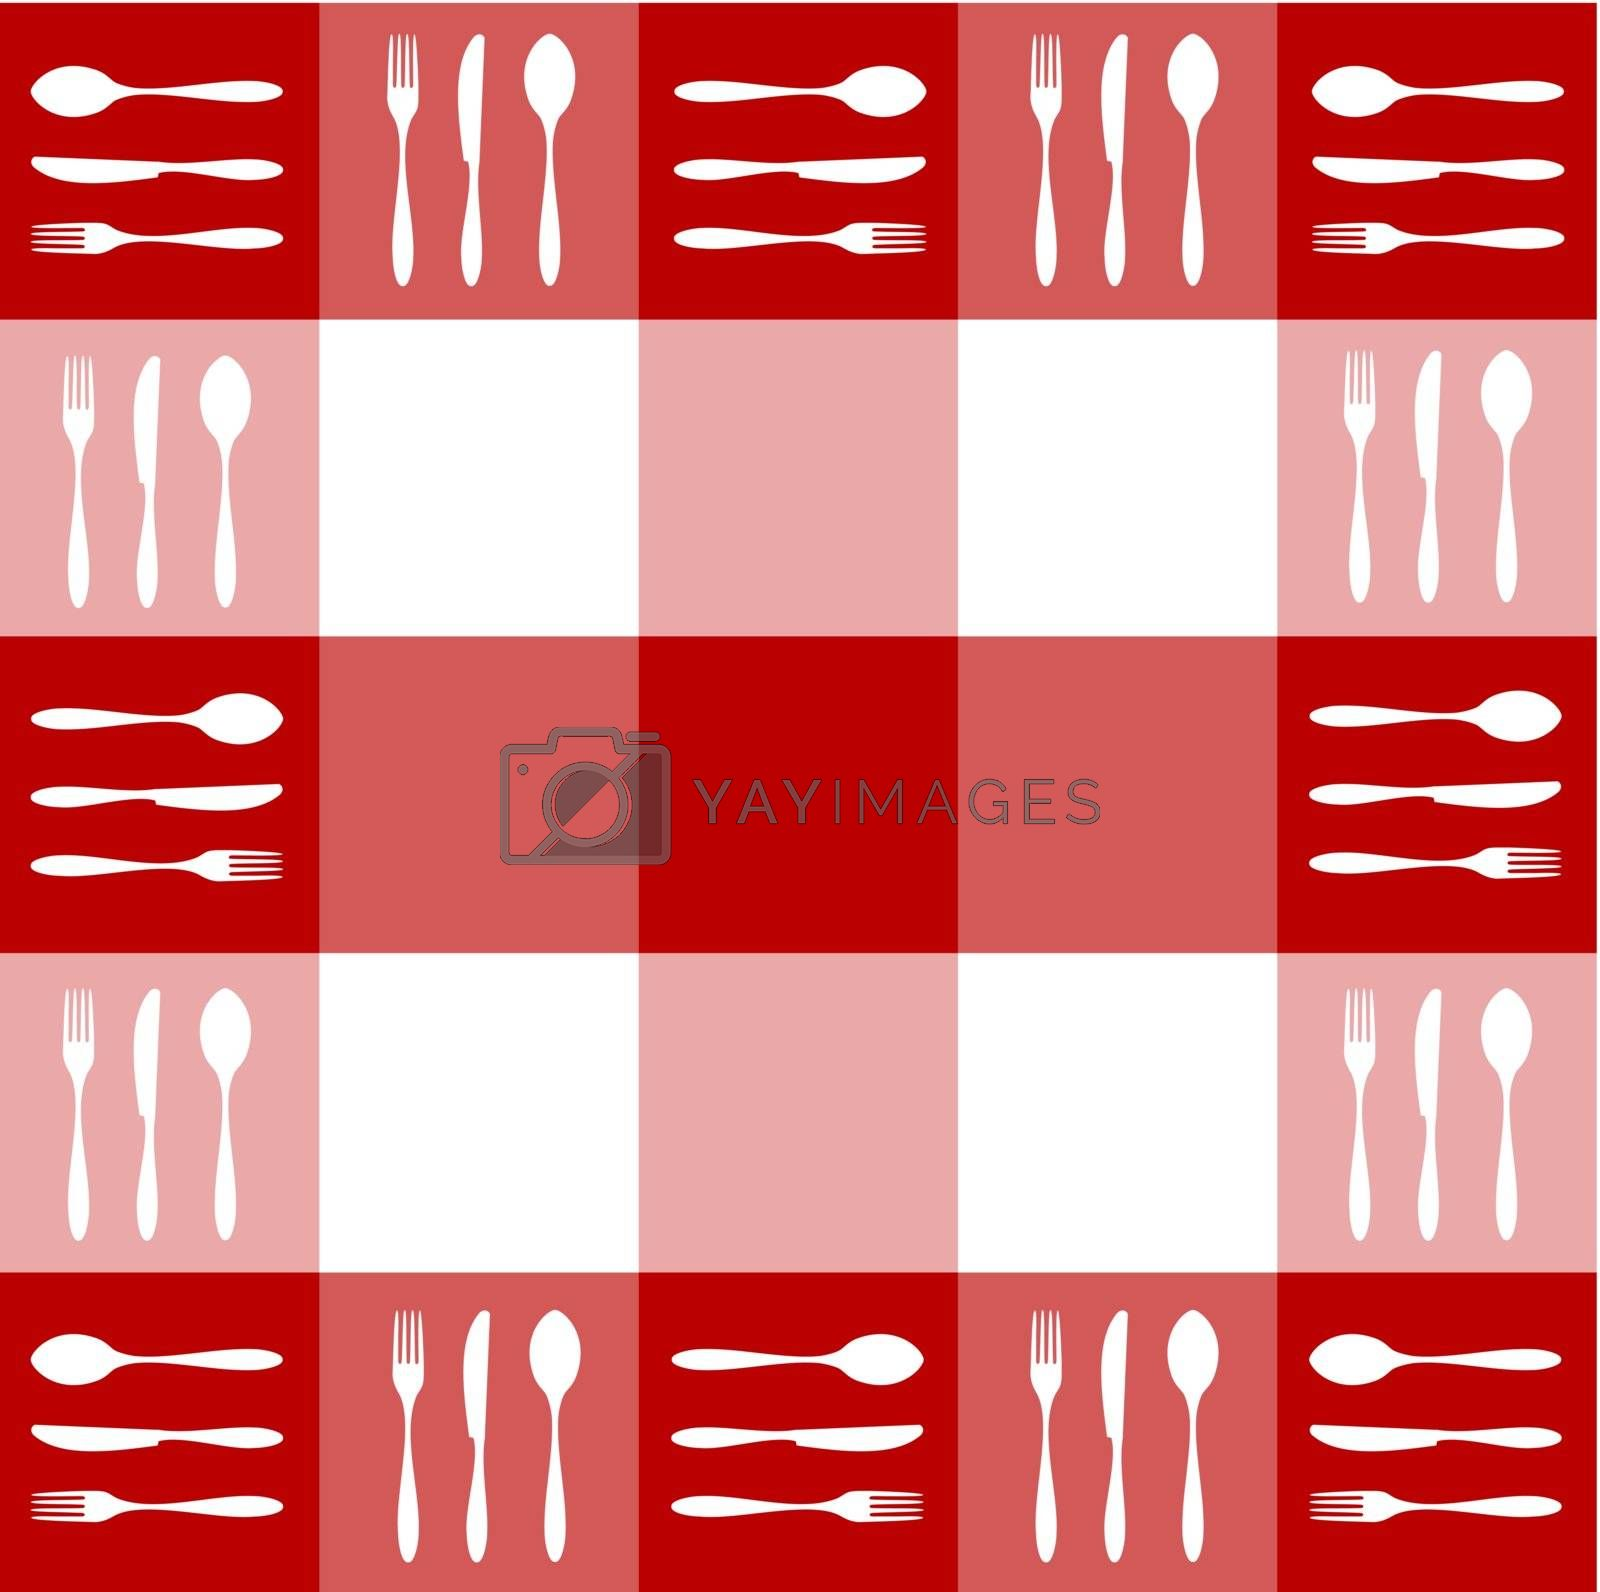 Food, restaurant, menu design with cutlery silhouettes pattern on red tablecloth texture. Vector available